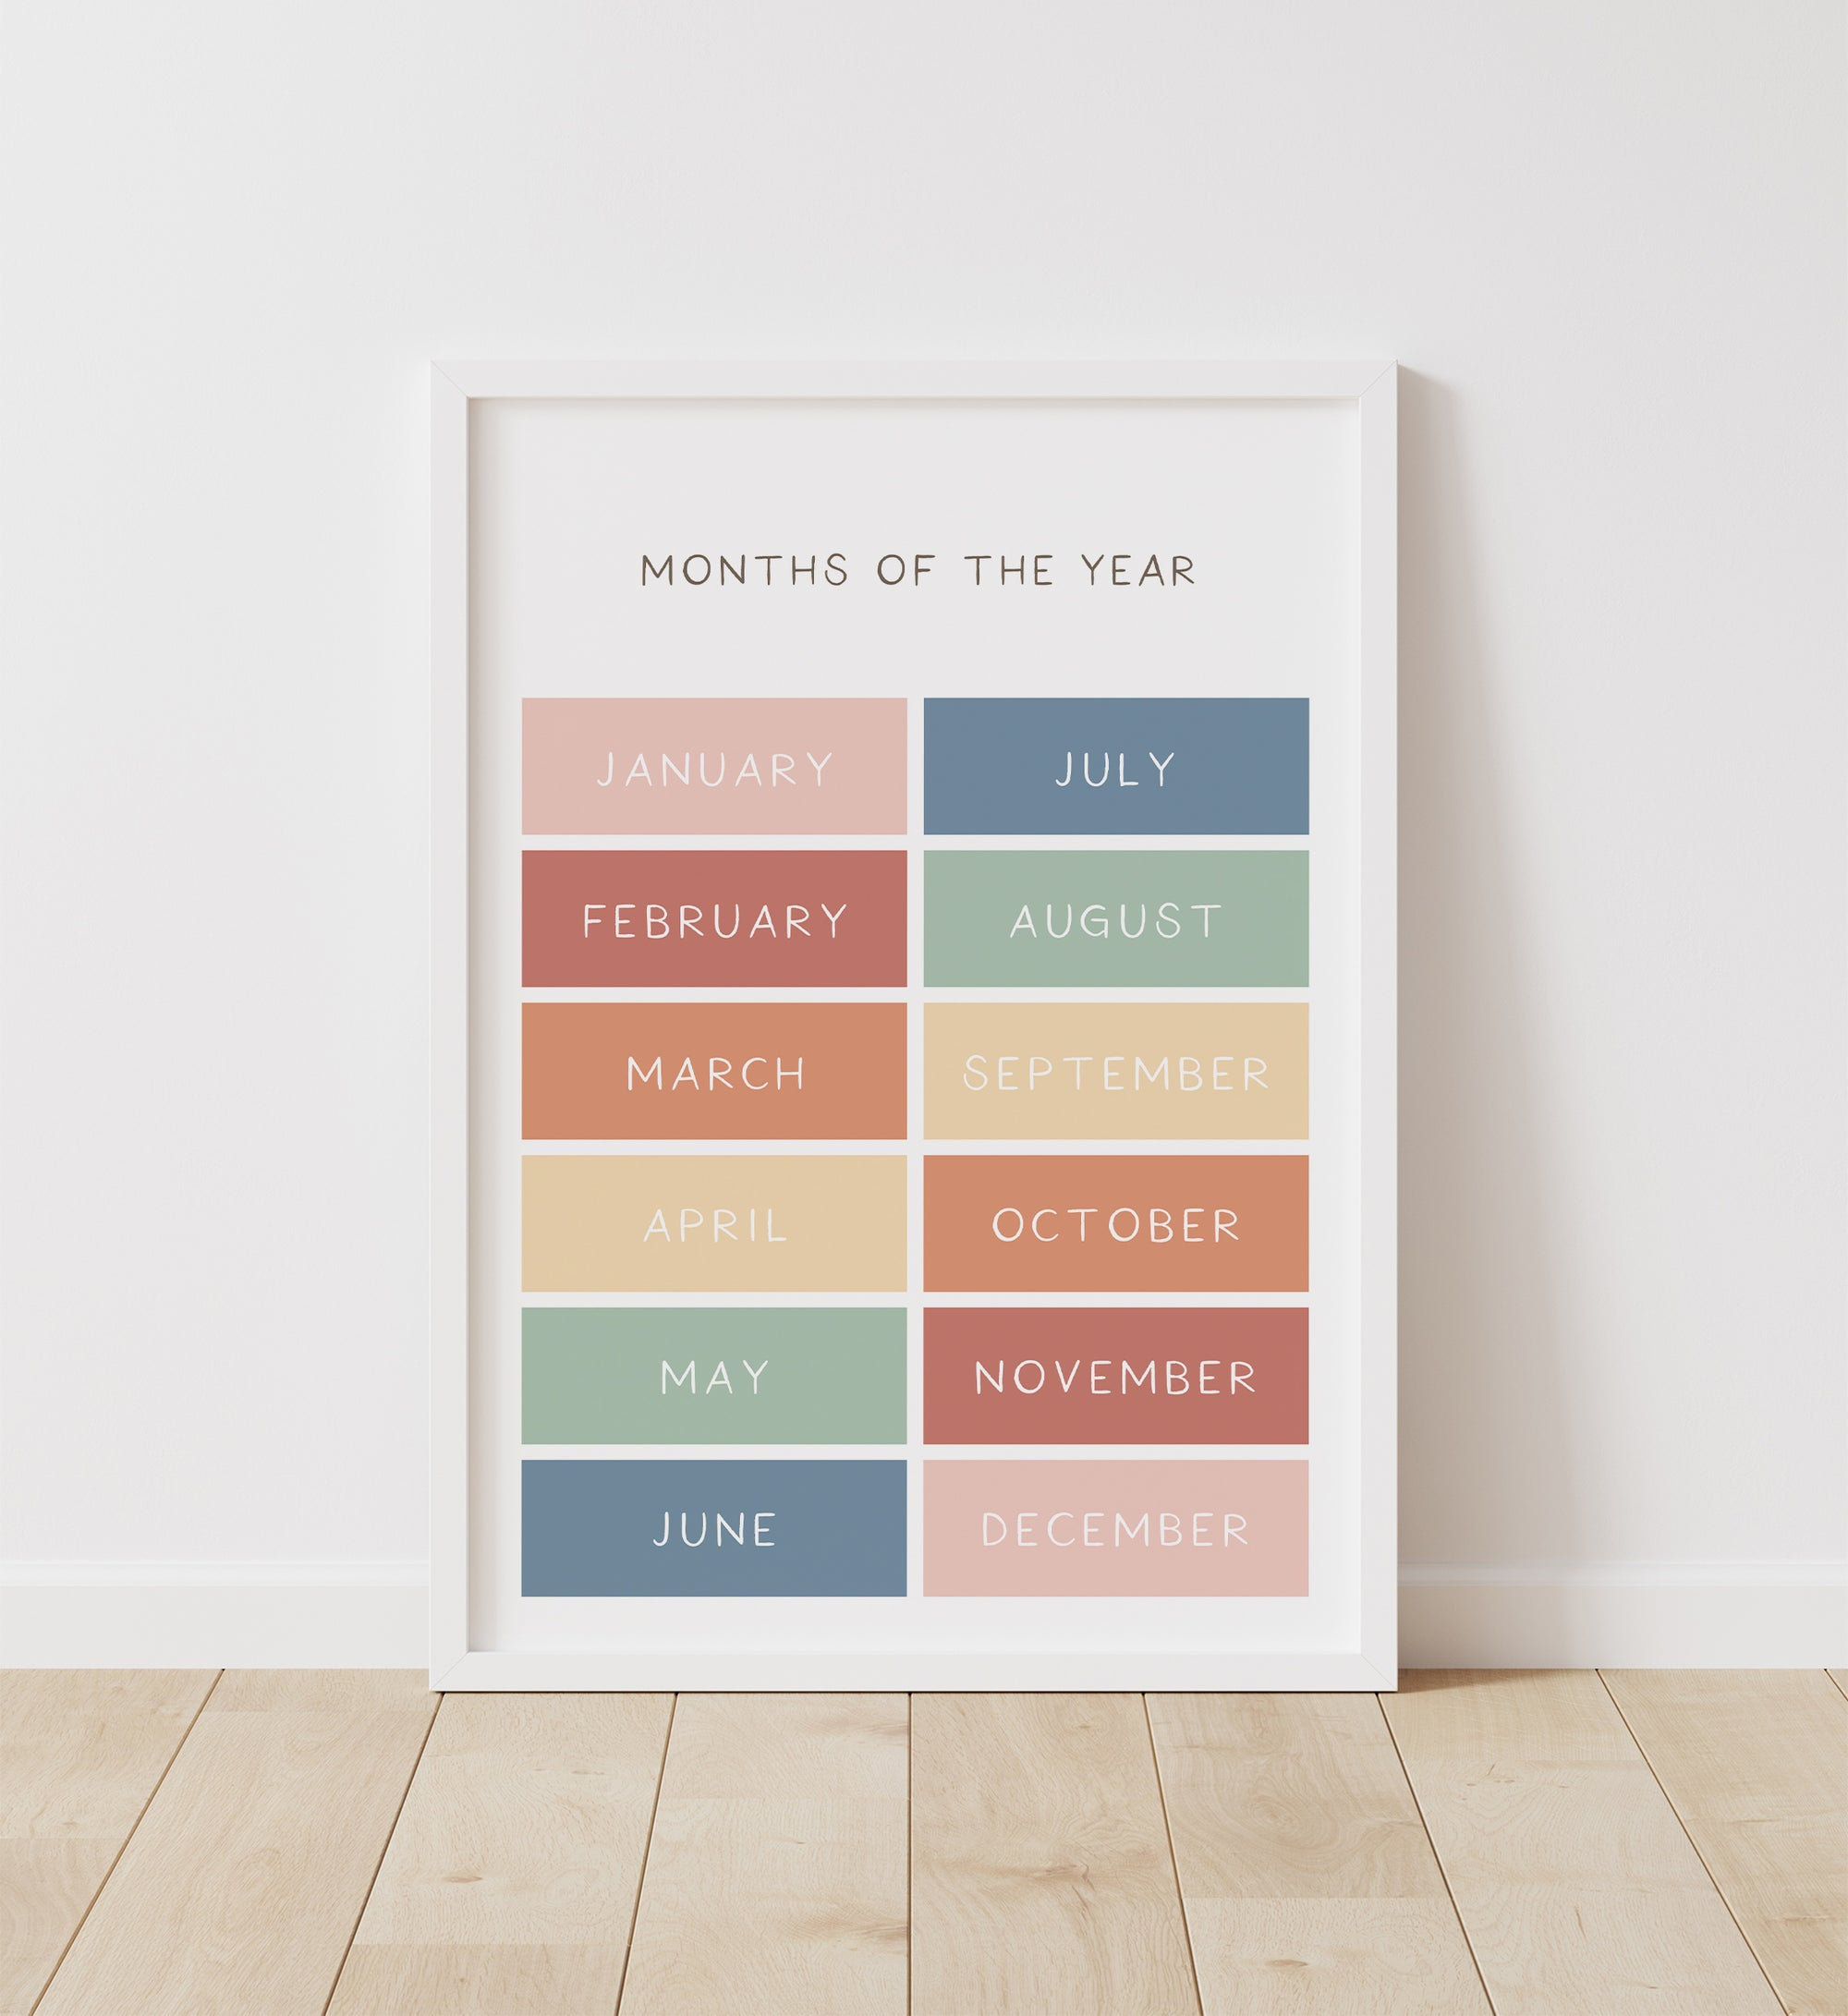 Months of the Year - Muted Rainbow